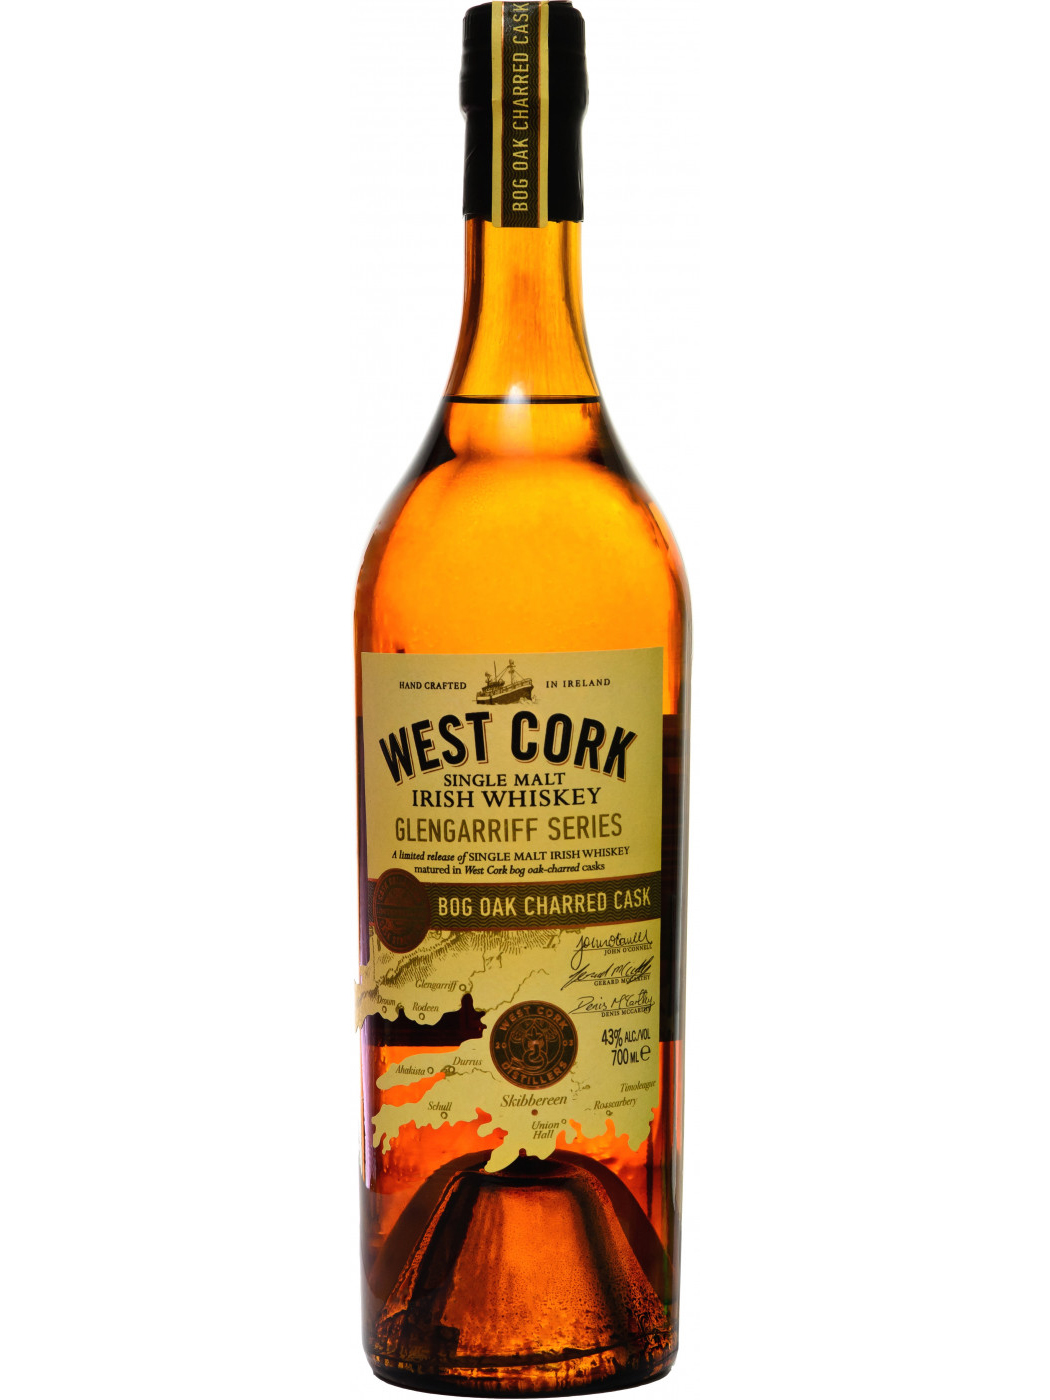 WEST CORK BOG OAK CHARRED CASK single malt